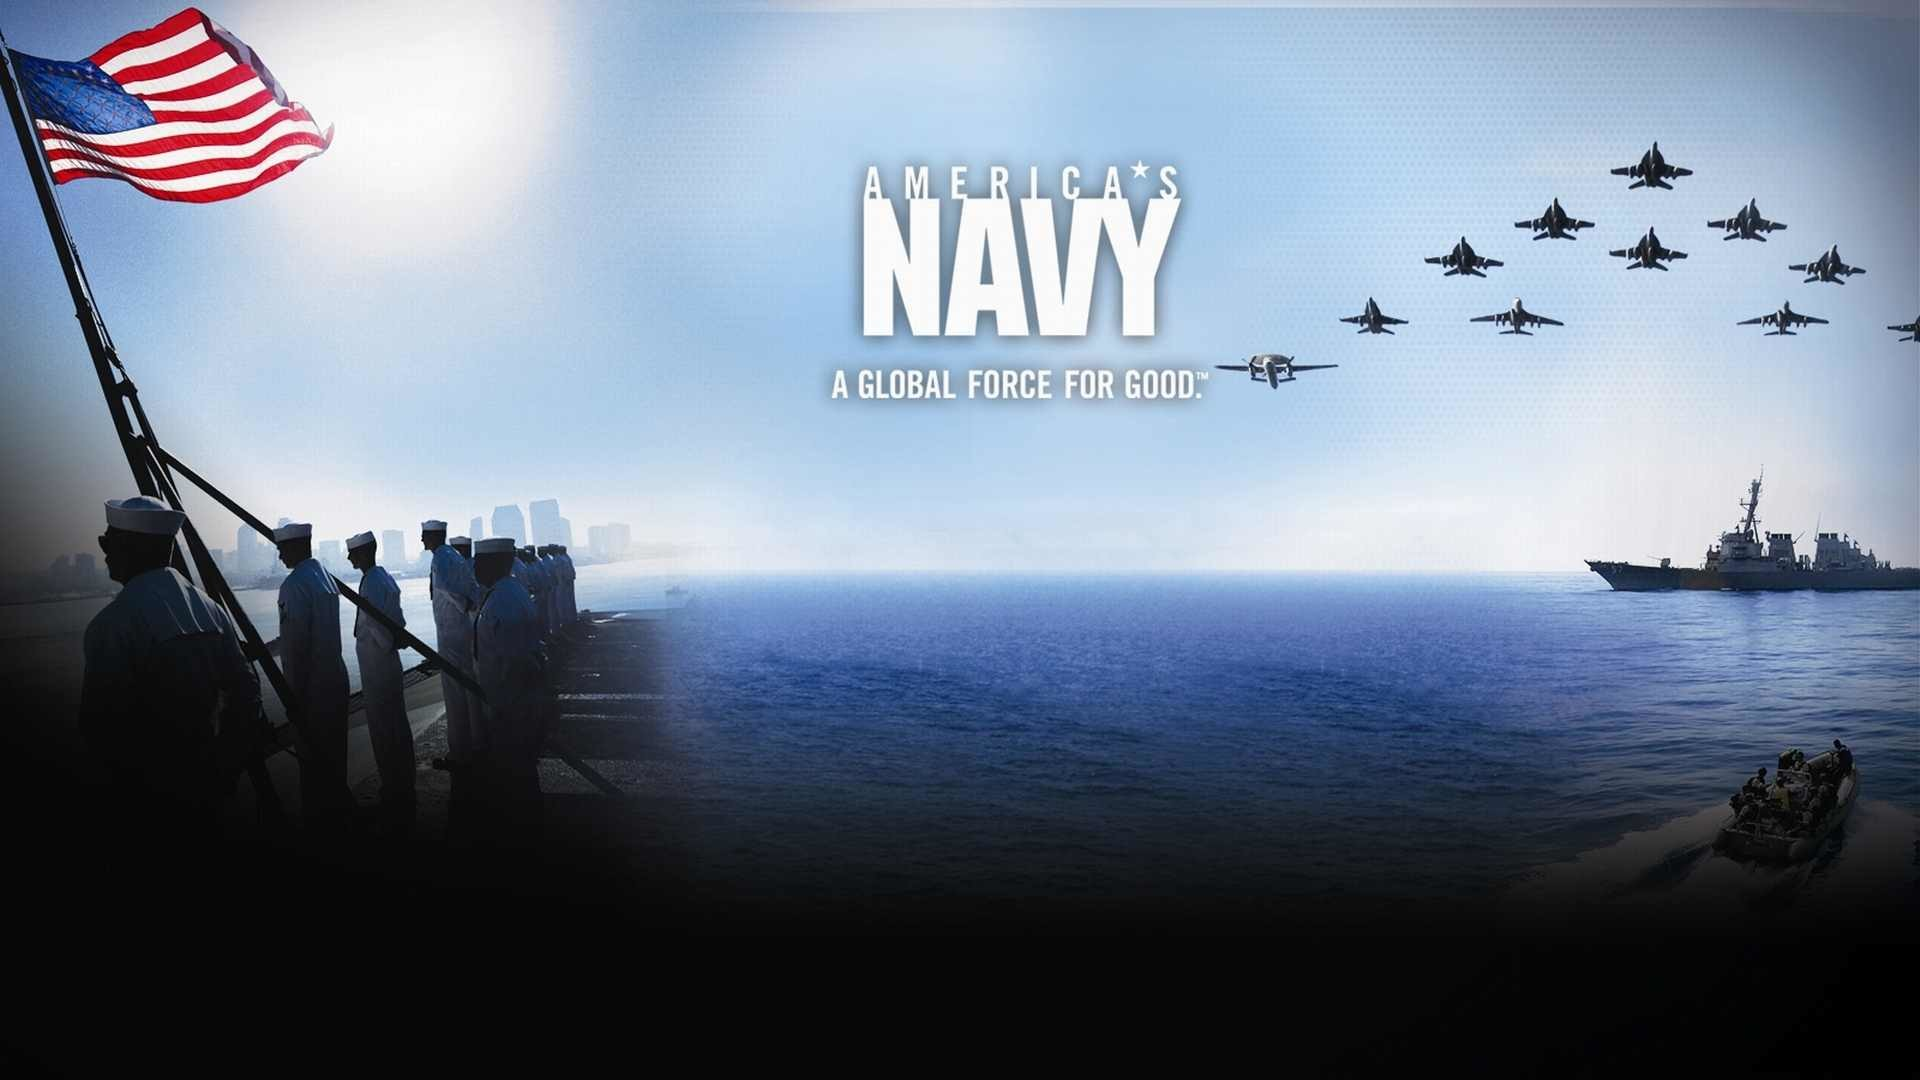 IPhone Navy Seal Wallpaper 62 images